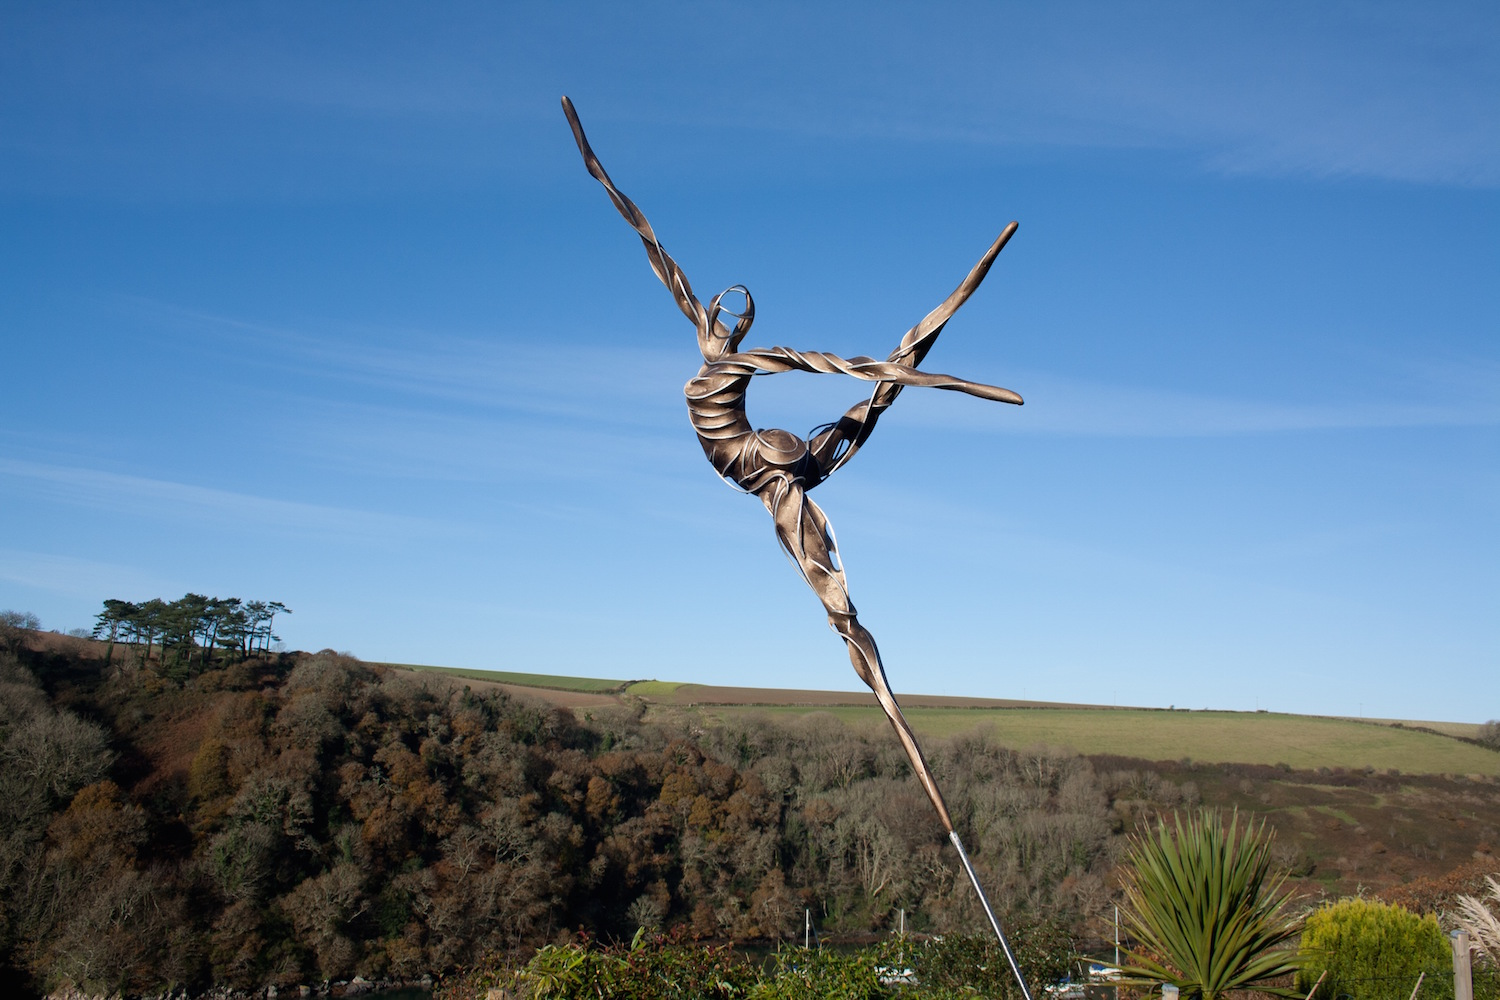 Among the contemporary works at the new Petworth Park Antiques and Fine Art Fair this month will be this outdoor sculpture by Penny Hardy titled 'Joie de Vivre,' to be shown by local West Sussex art dealers Moncrieff Bray Gallery, priced at £1,500 ($2,275).